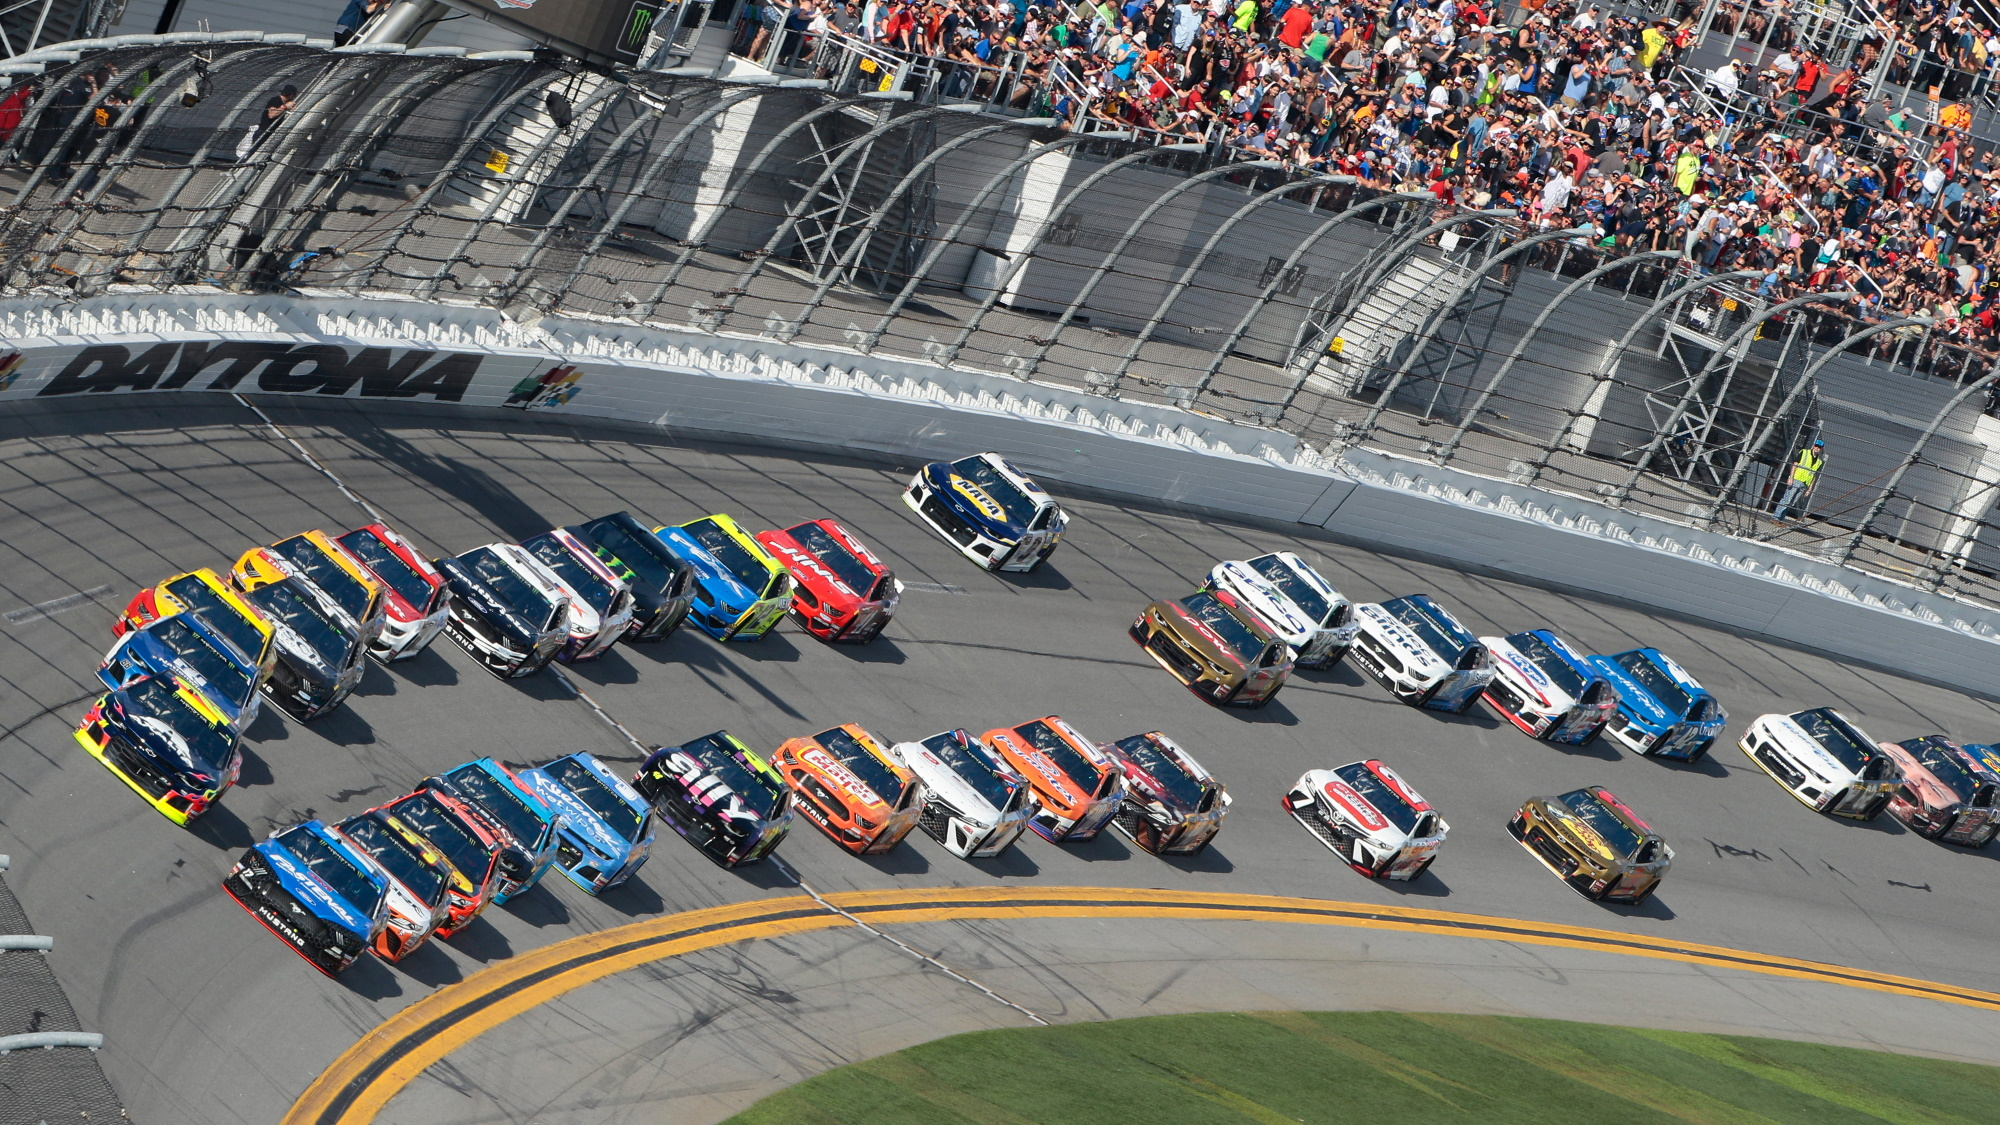 Daytona 500 2020 live stream: how to watch the NASCAR race from anywhere